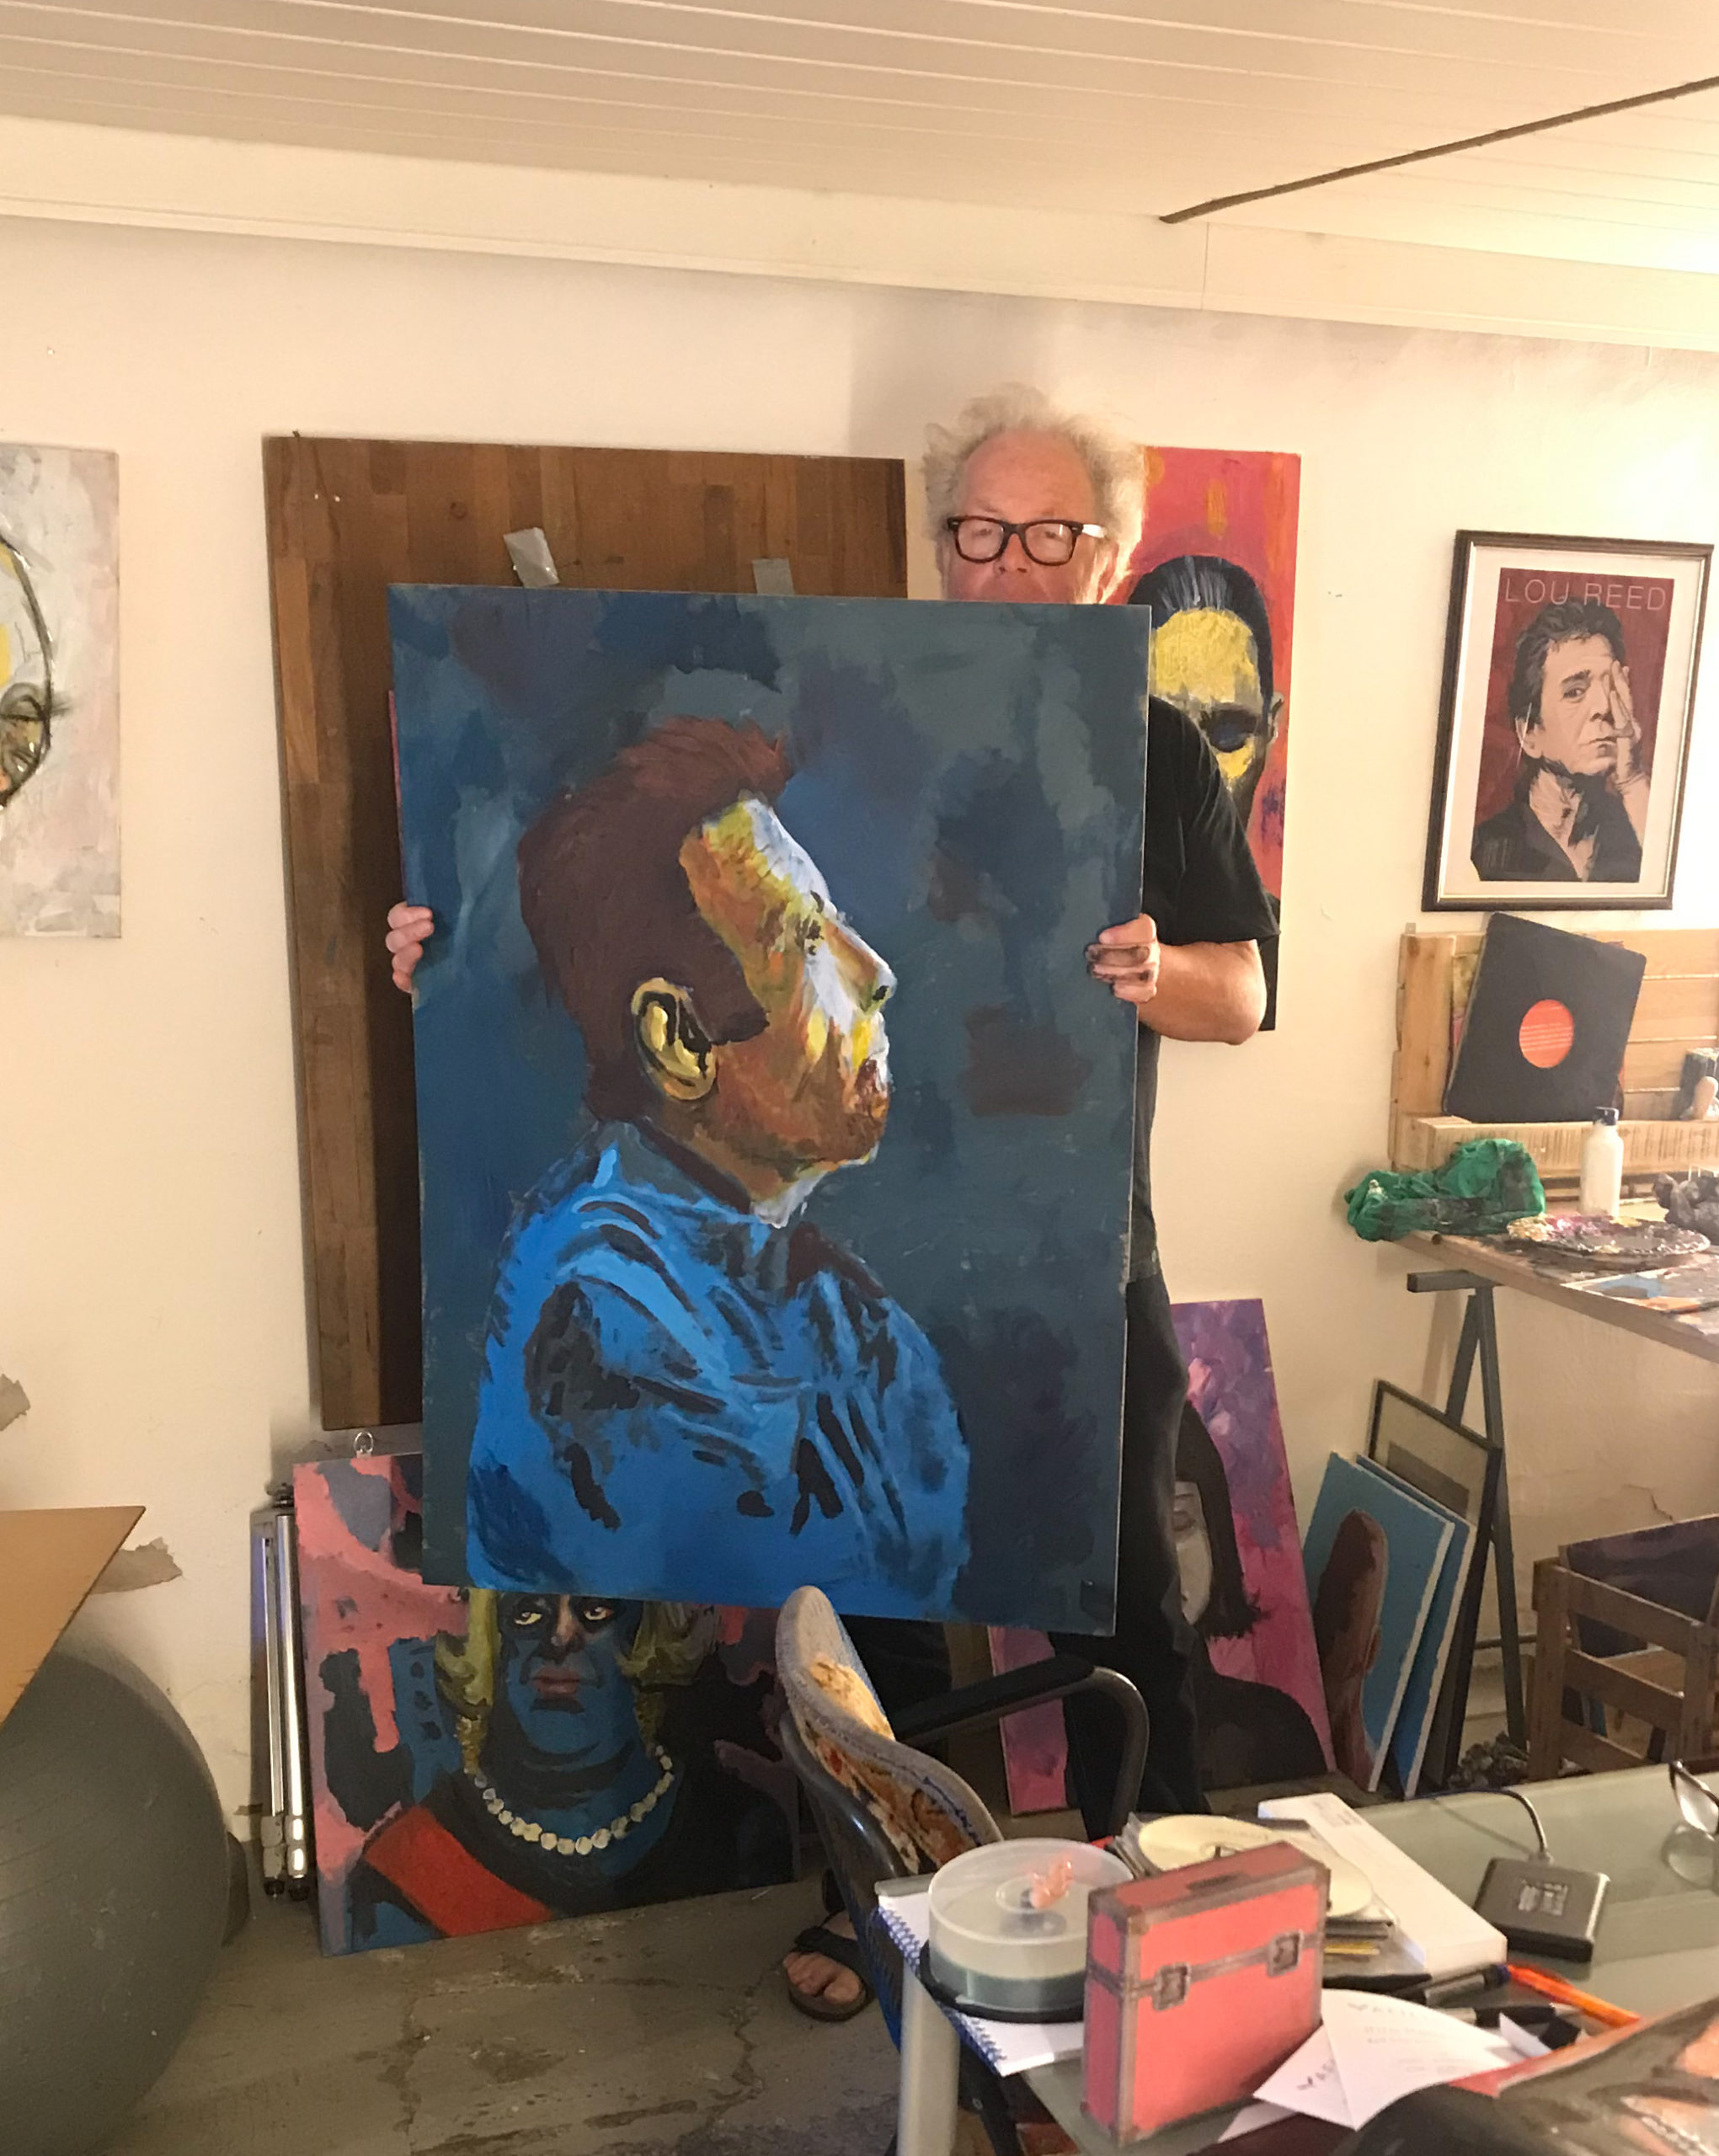 Odermann with big Tom Waits painting